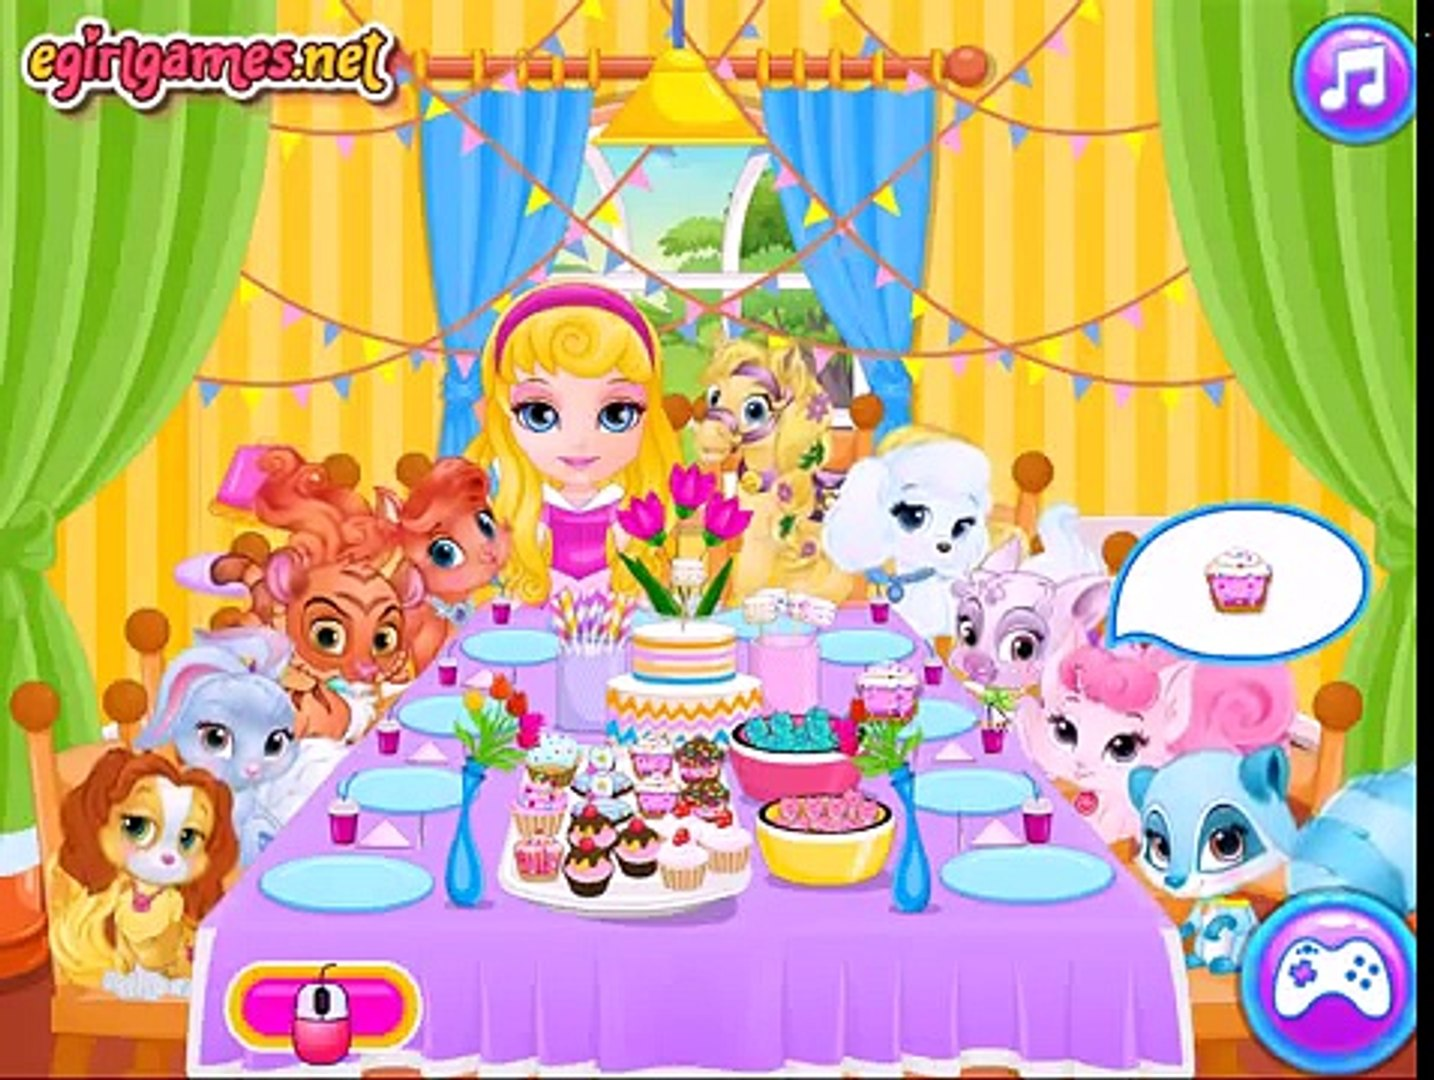 Baby Barbie Palace Pets - Pajama Party Dress Up Game for Kids and Girls